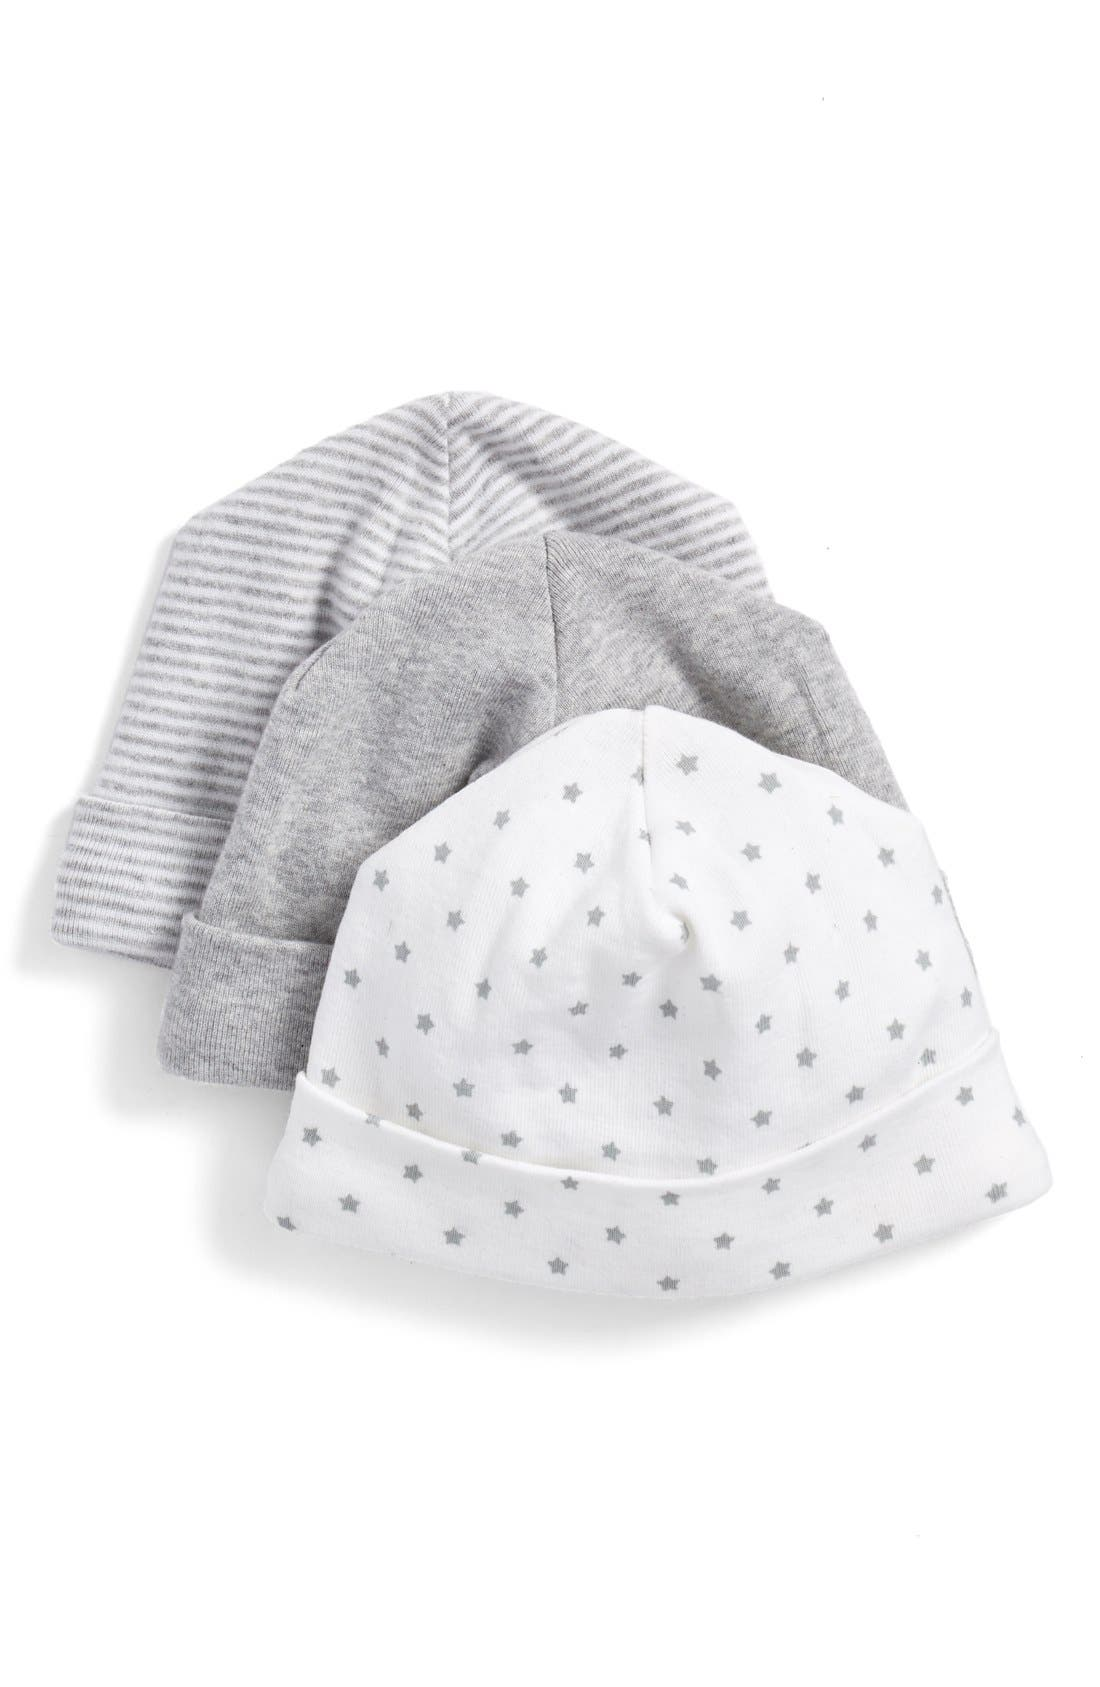 NORDSTROM BABY Cotton Hats